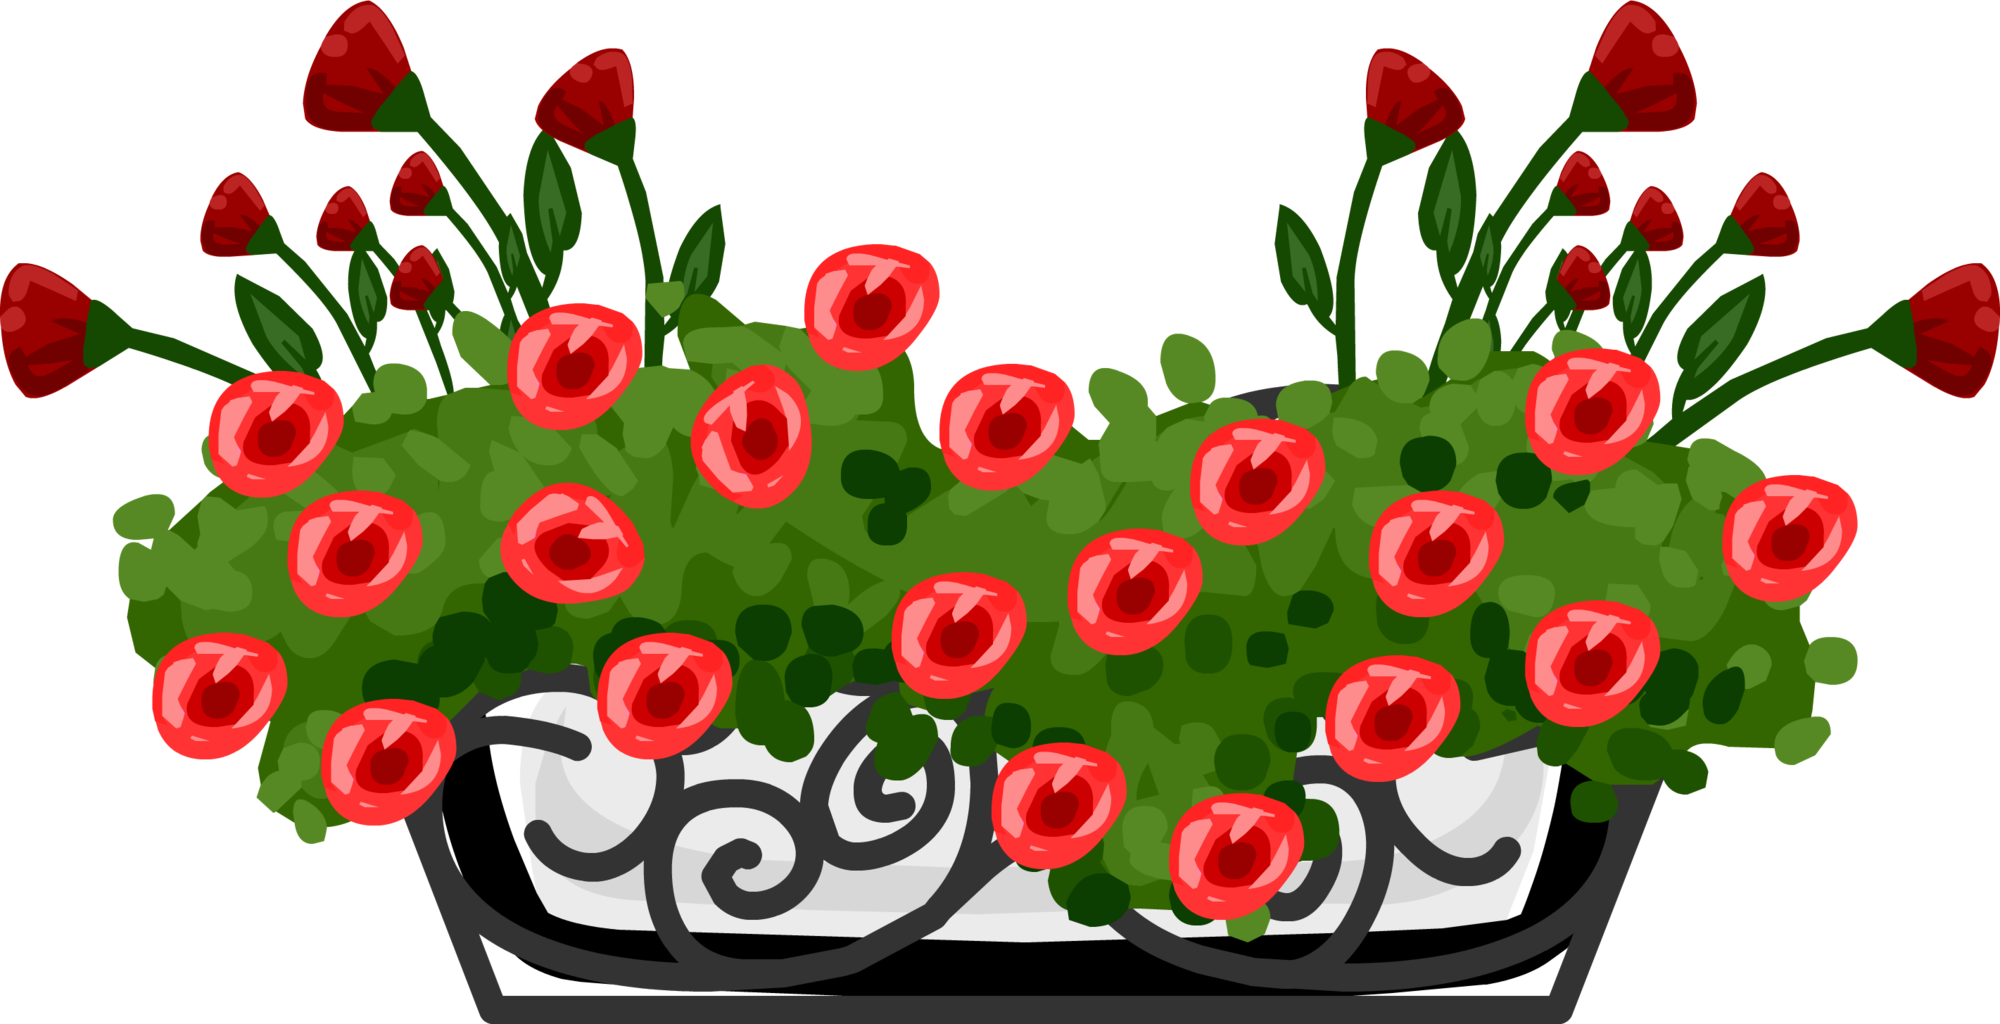 Image basket sprite png. Win clipart medieval window